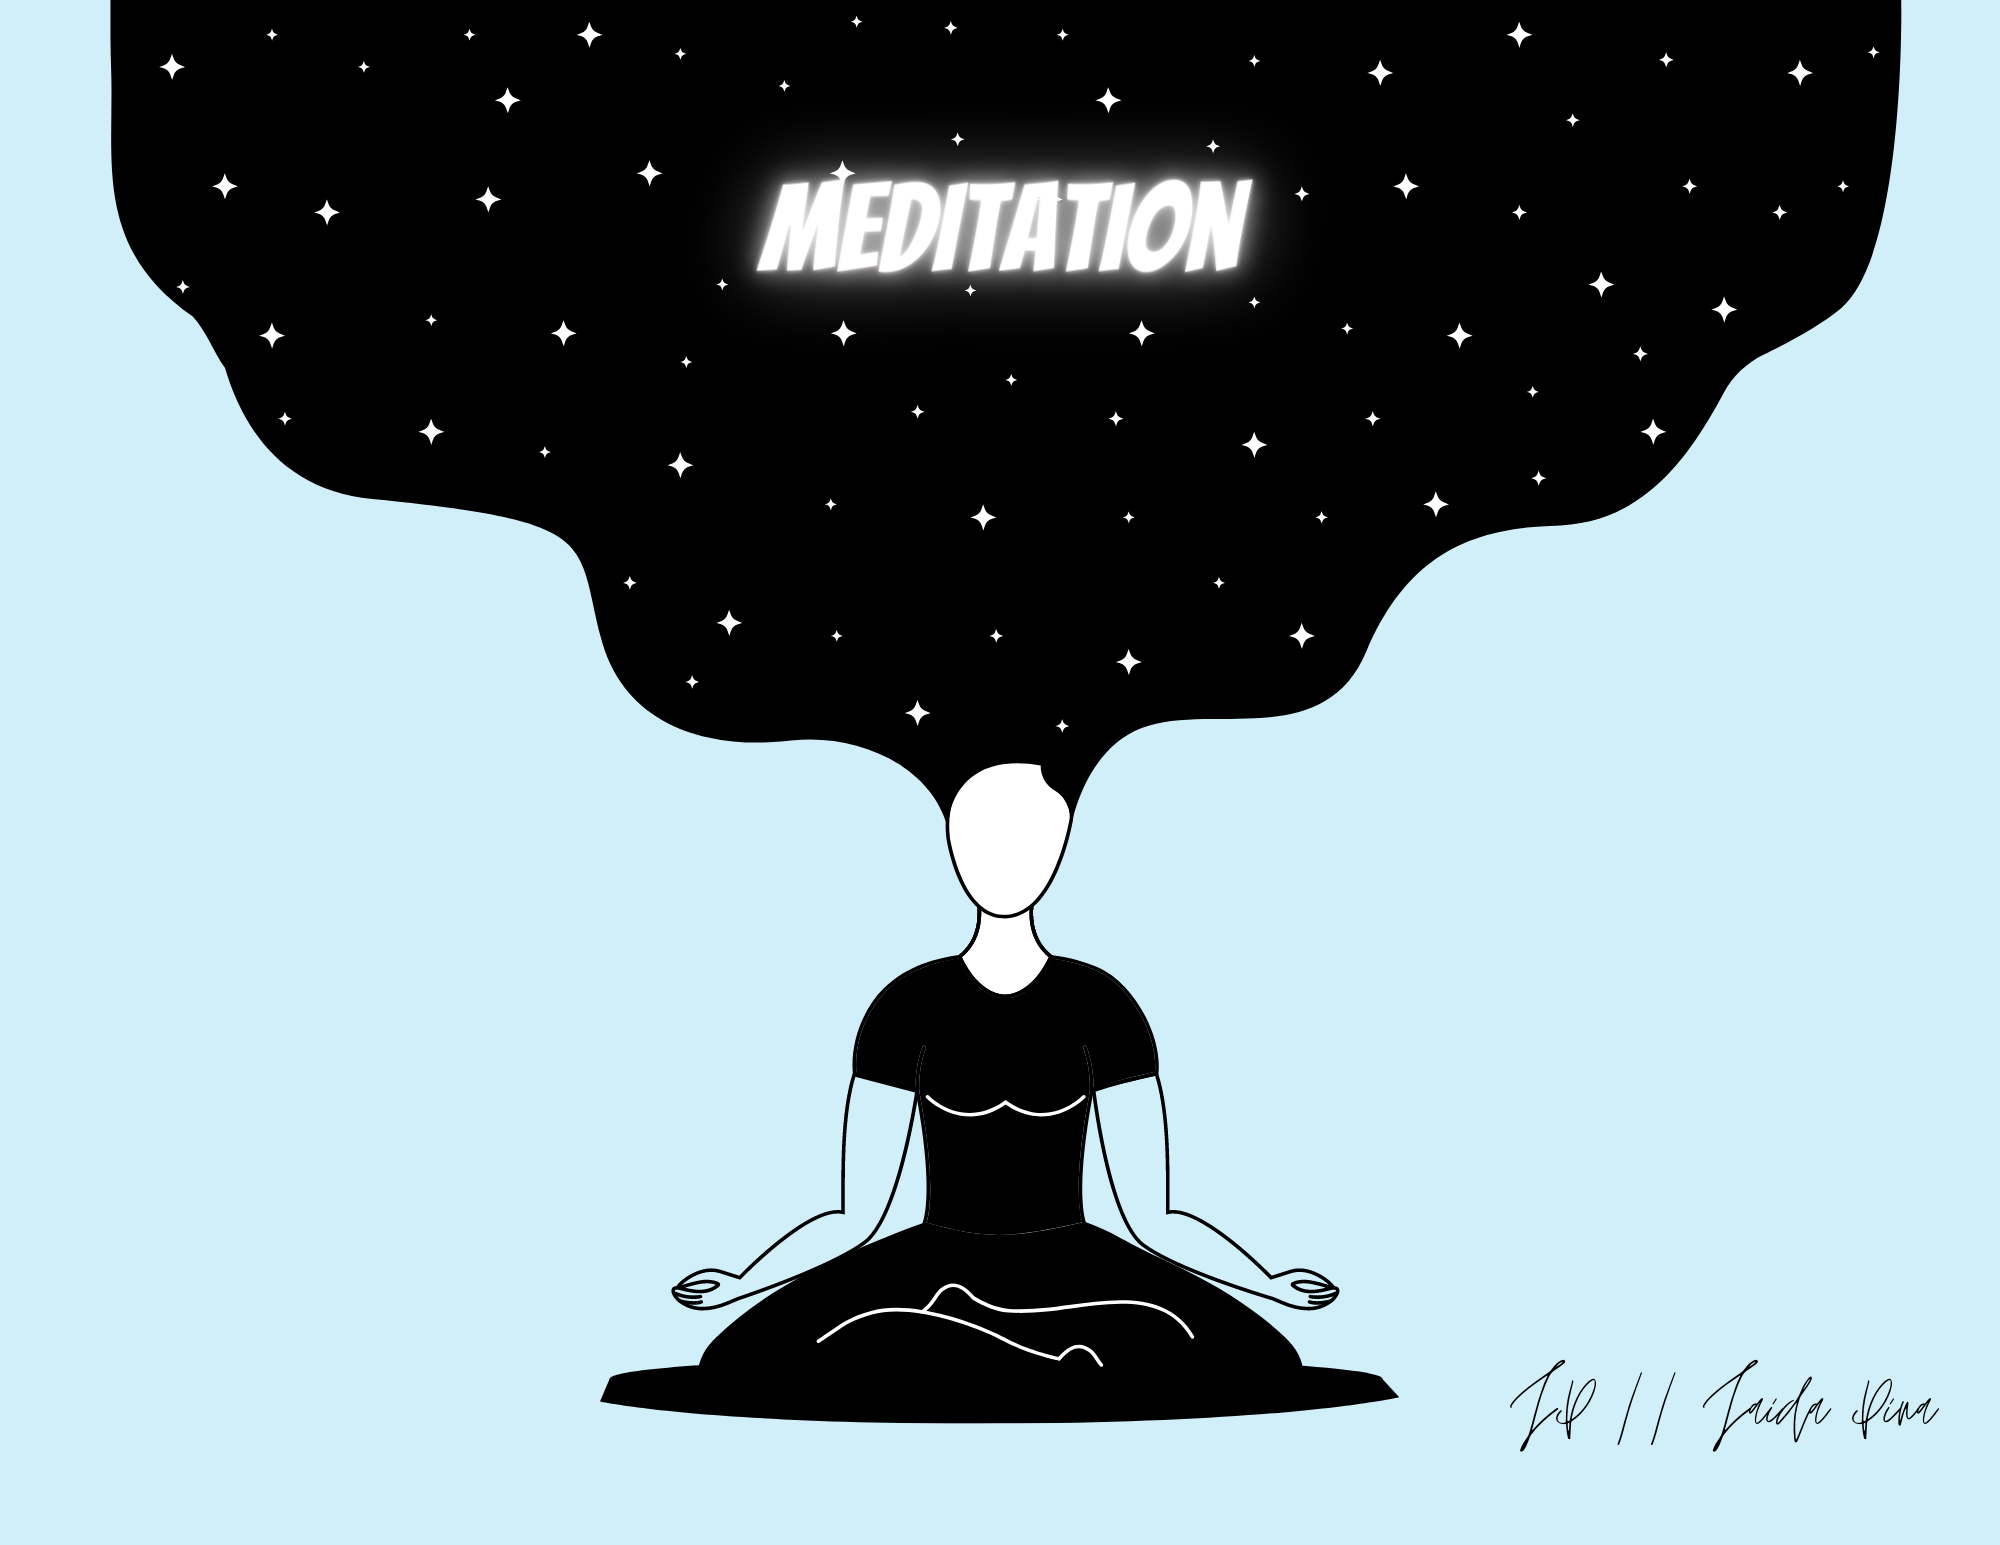 Drawing of a person's mind opening as they meditate. Art by the author.